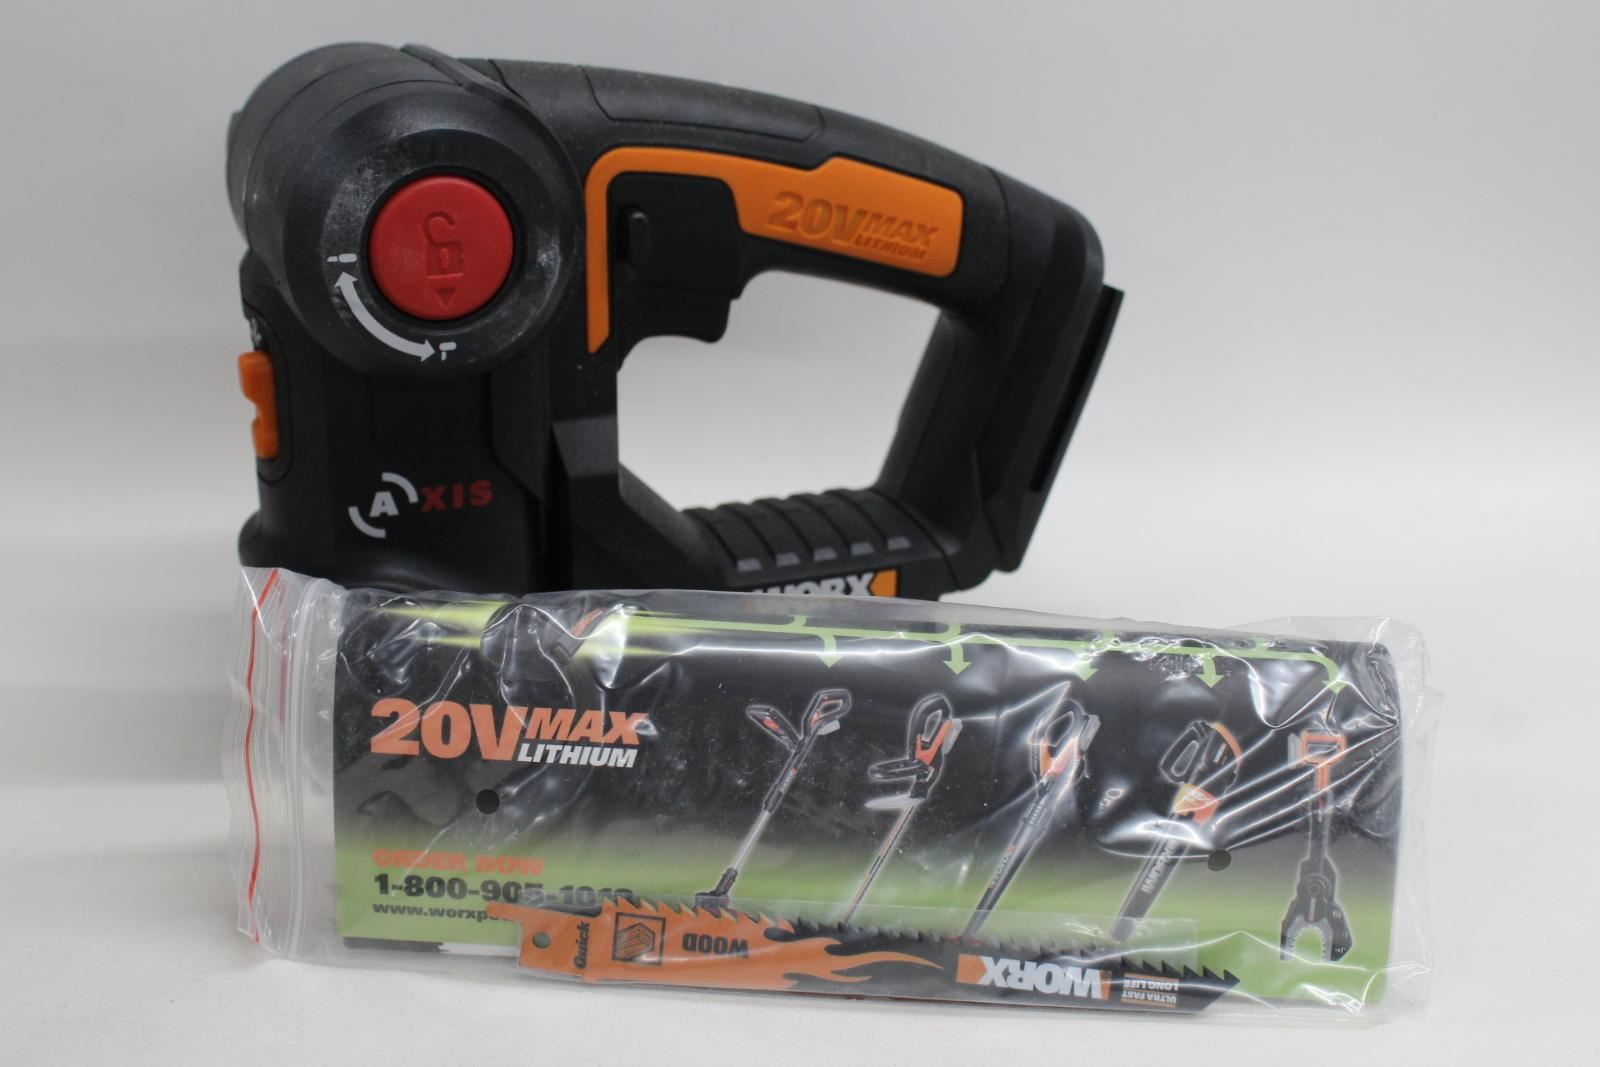 WORX-2-In-1-Reciprocating-Saw-Jigsaw-Tool-20-Volt-Trimming-Cutting-Compact-Body